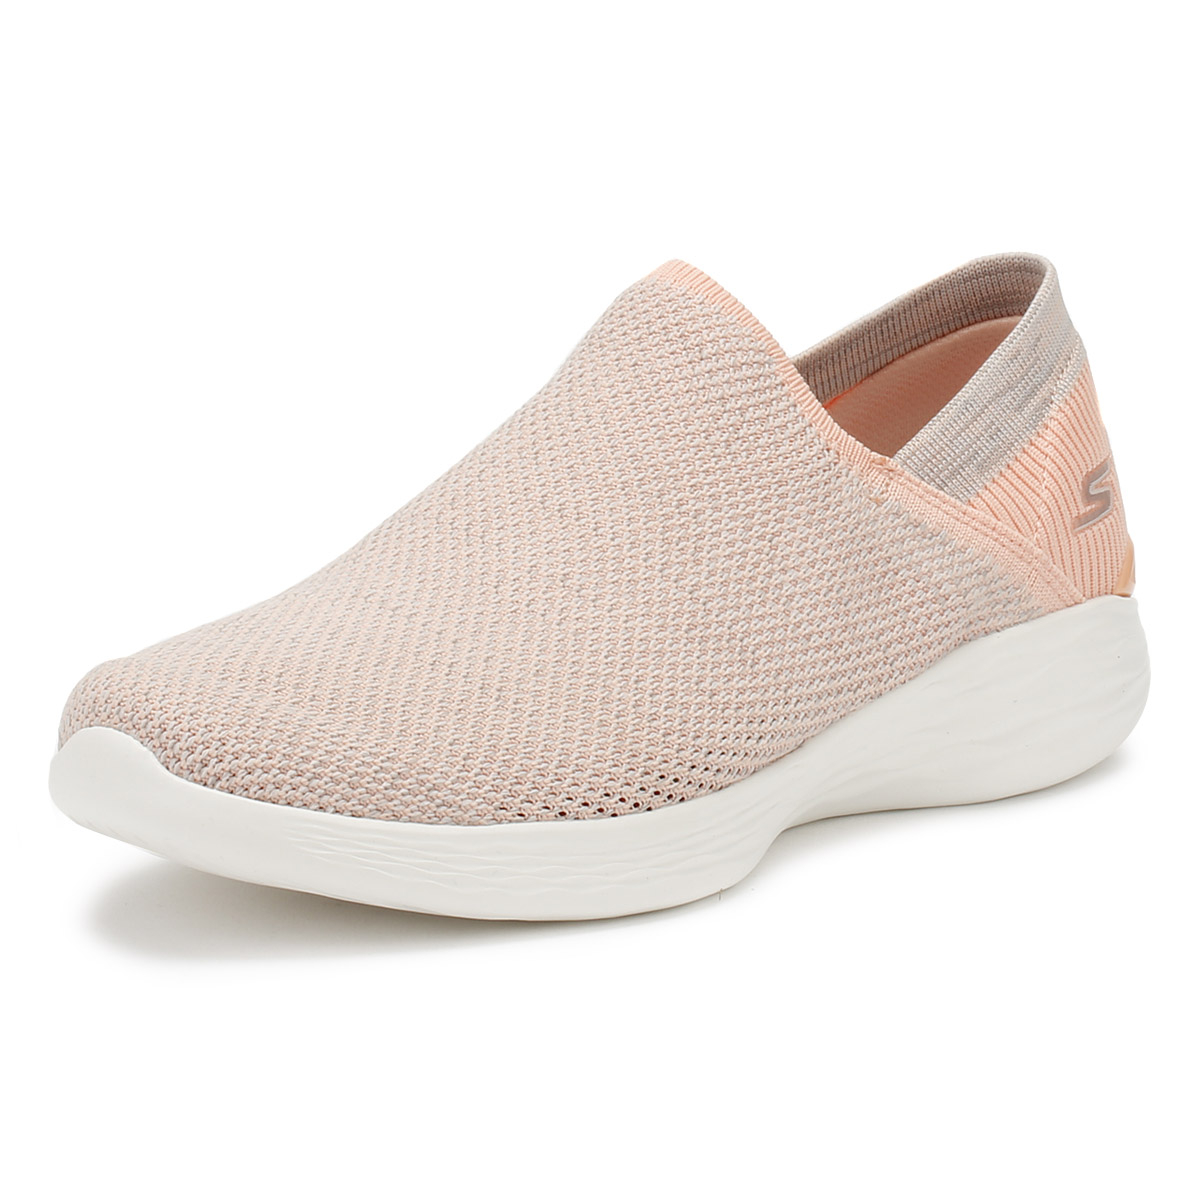 a30a47ca8e9 Details about Skechers Womens Peach You Rise Trainers Slip On Ladies Casual  Shoes